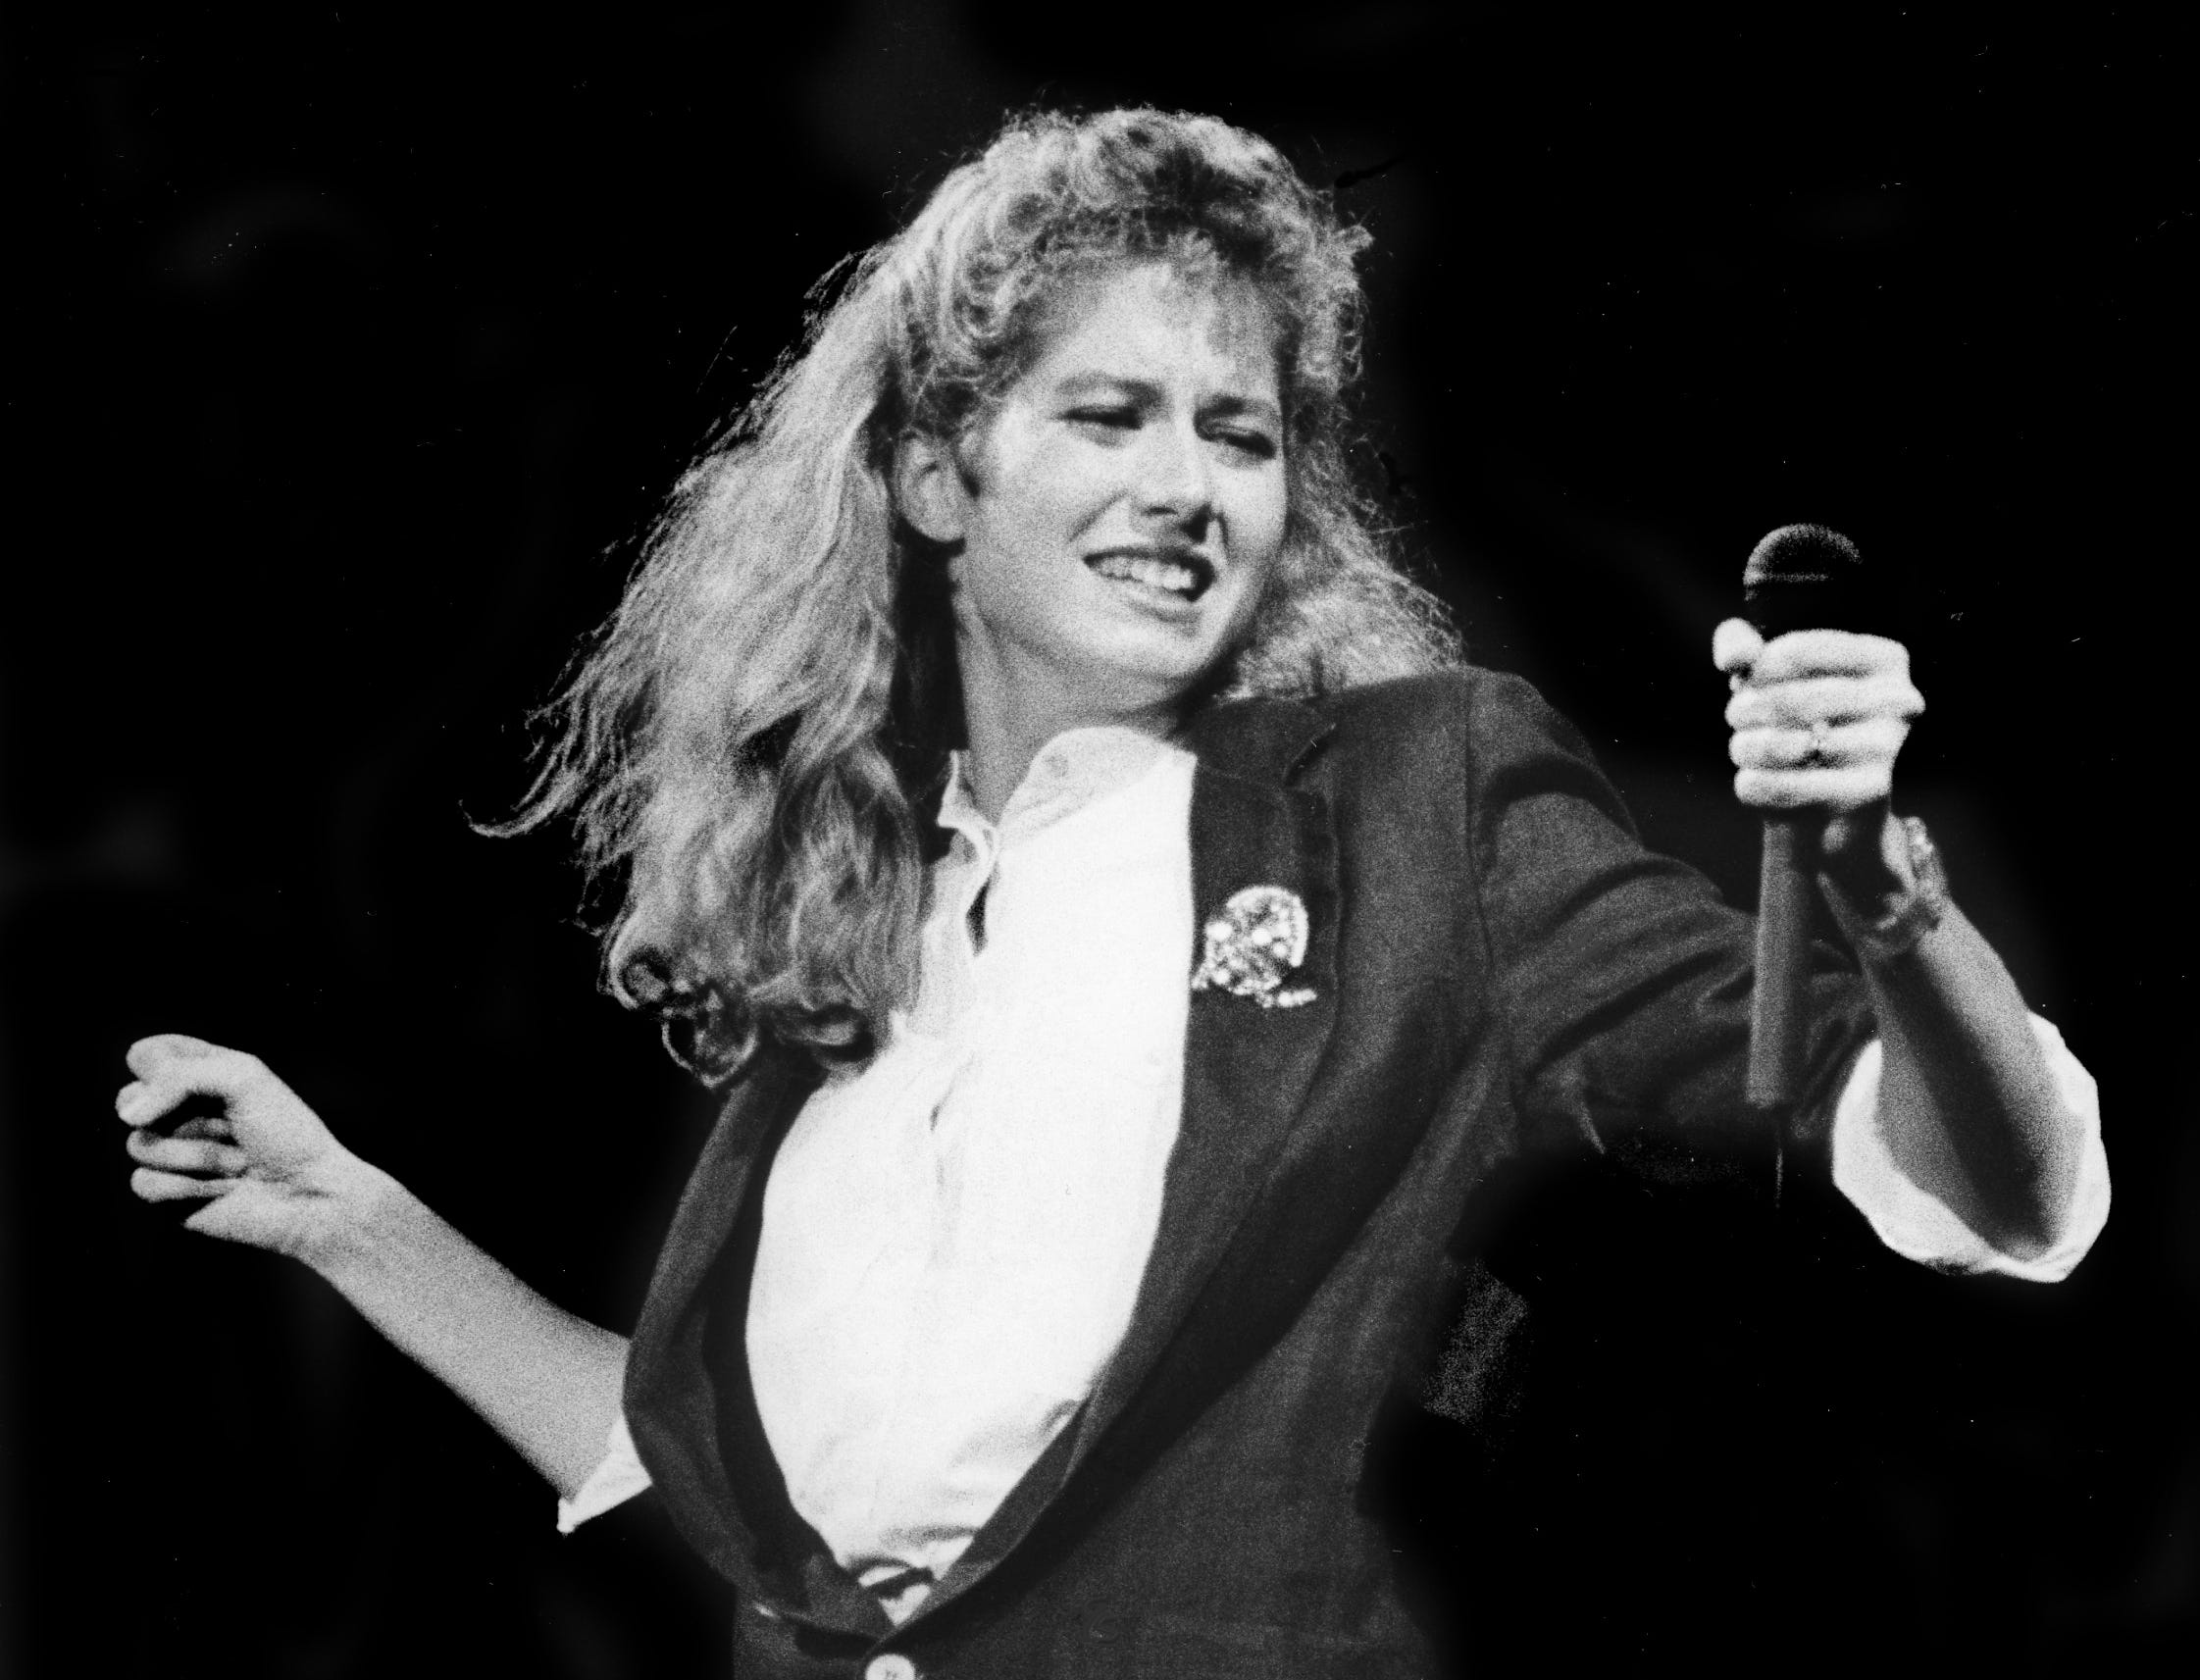 Contemporary Christian music diva Amy Grant celebrates before a capacity crowd at Middle Tennessee State University's Murphy Center on Oct. 20, 1985.